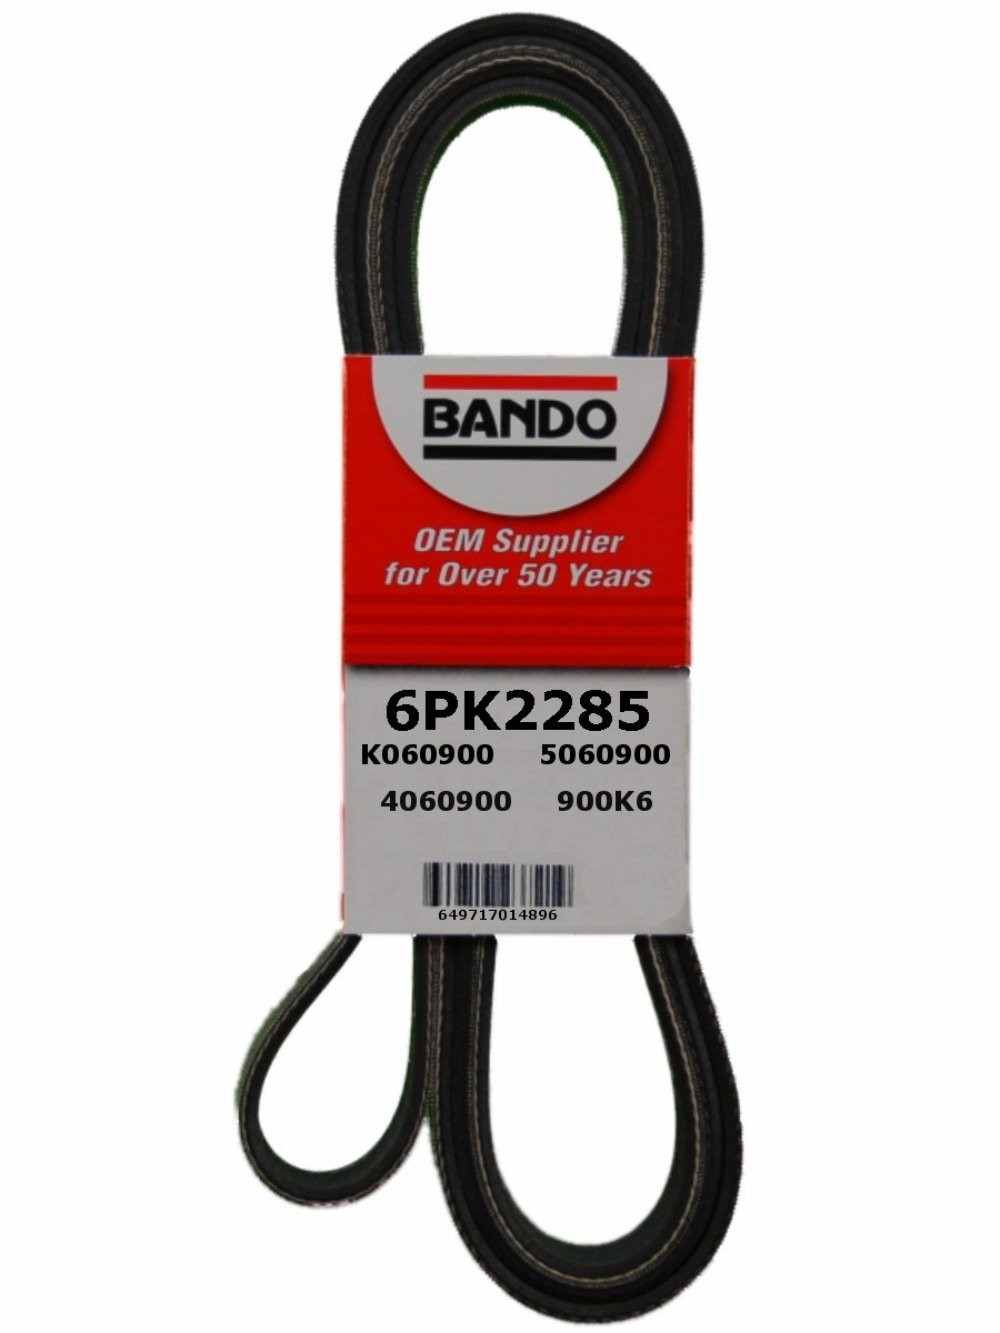 BANDO - Rib Ace Precision Engineered V-Ribbed Belt - BWO 6PK2285